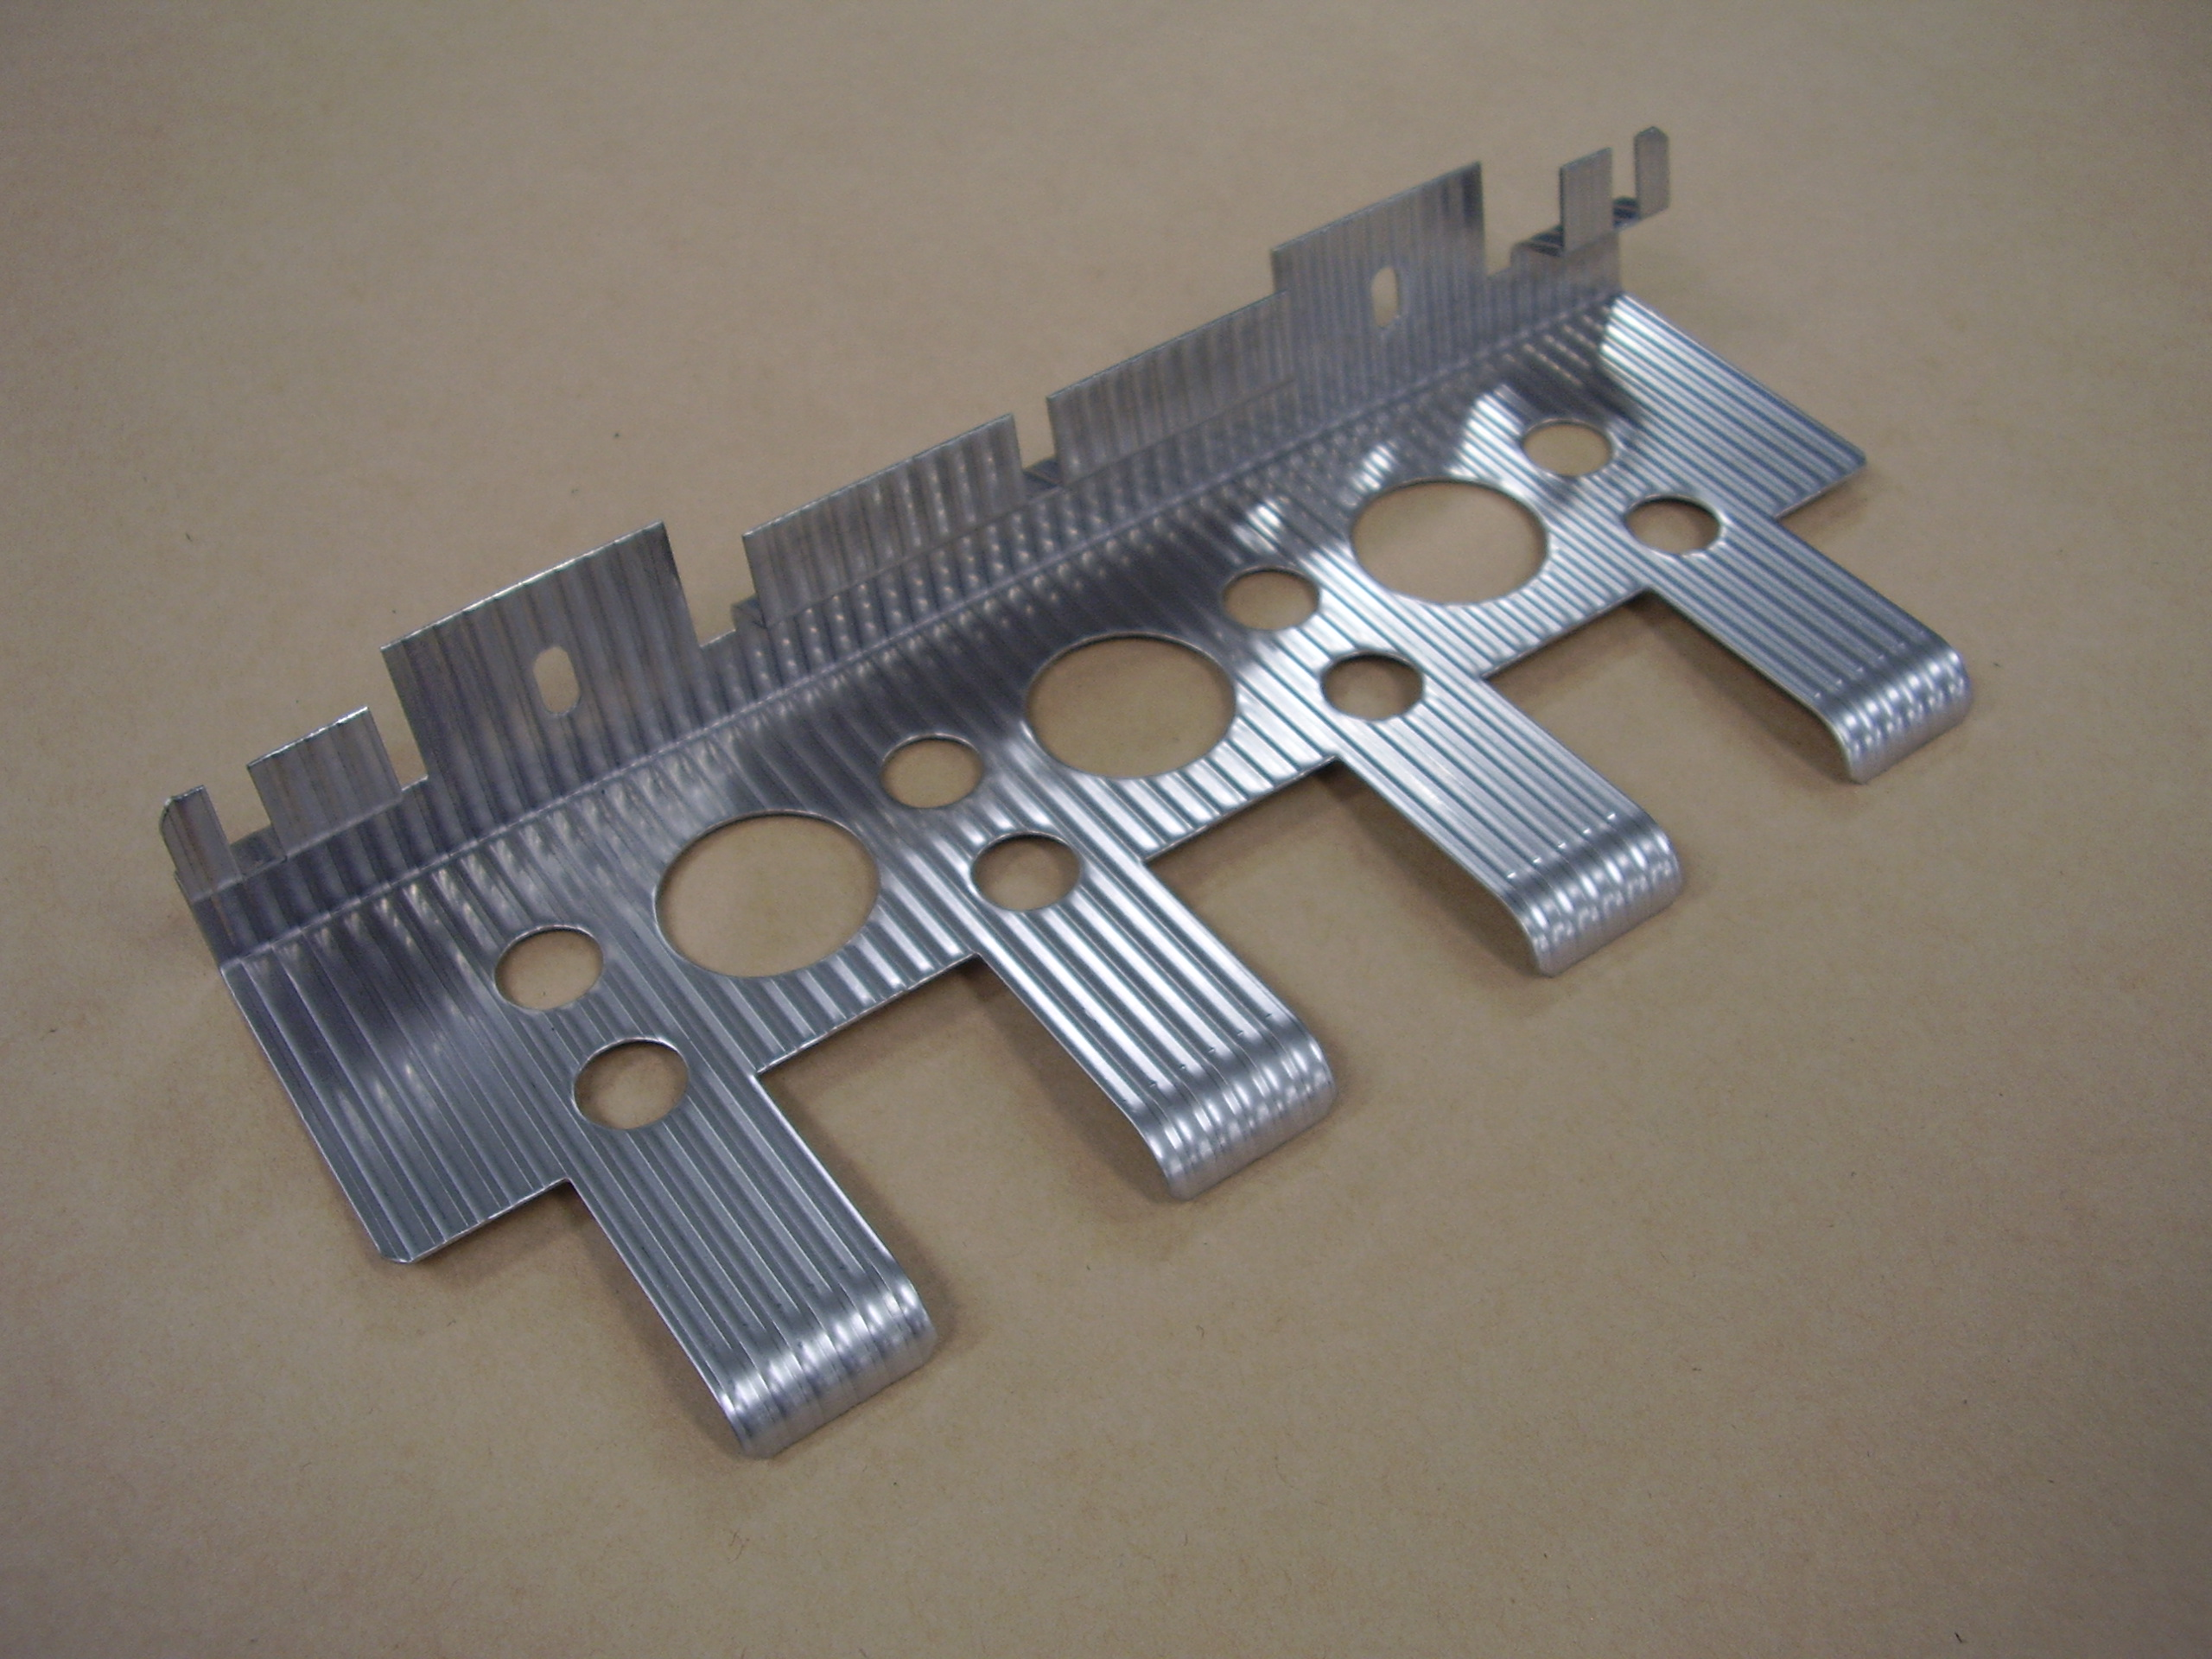 Procurement and Processing (SUS304) of Stainless Steel Emboss Materials (corrugated plate)